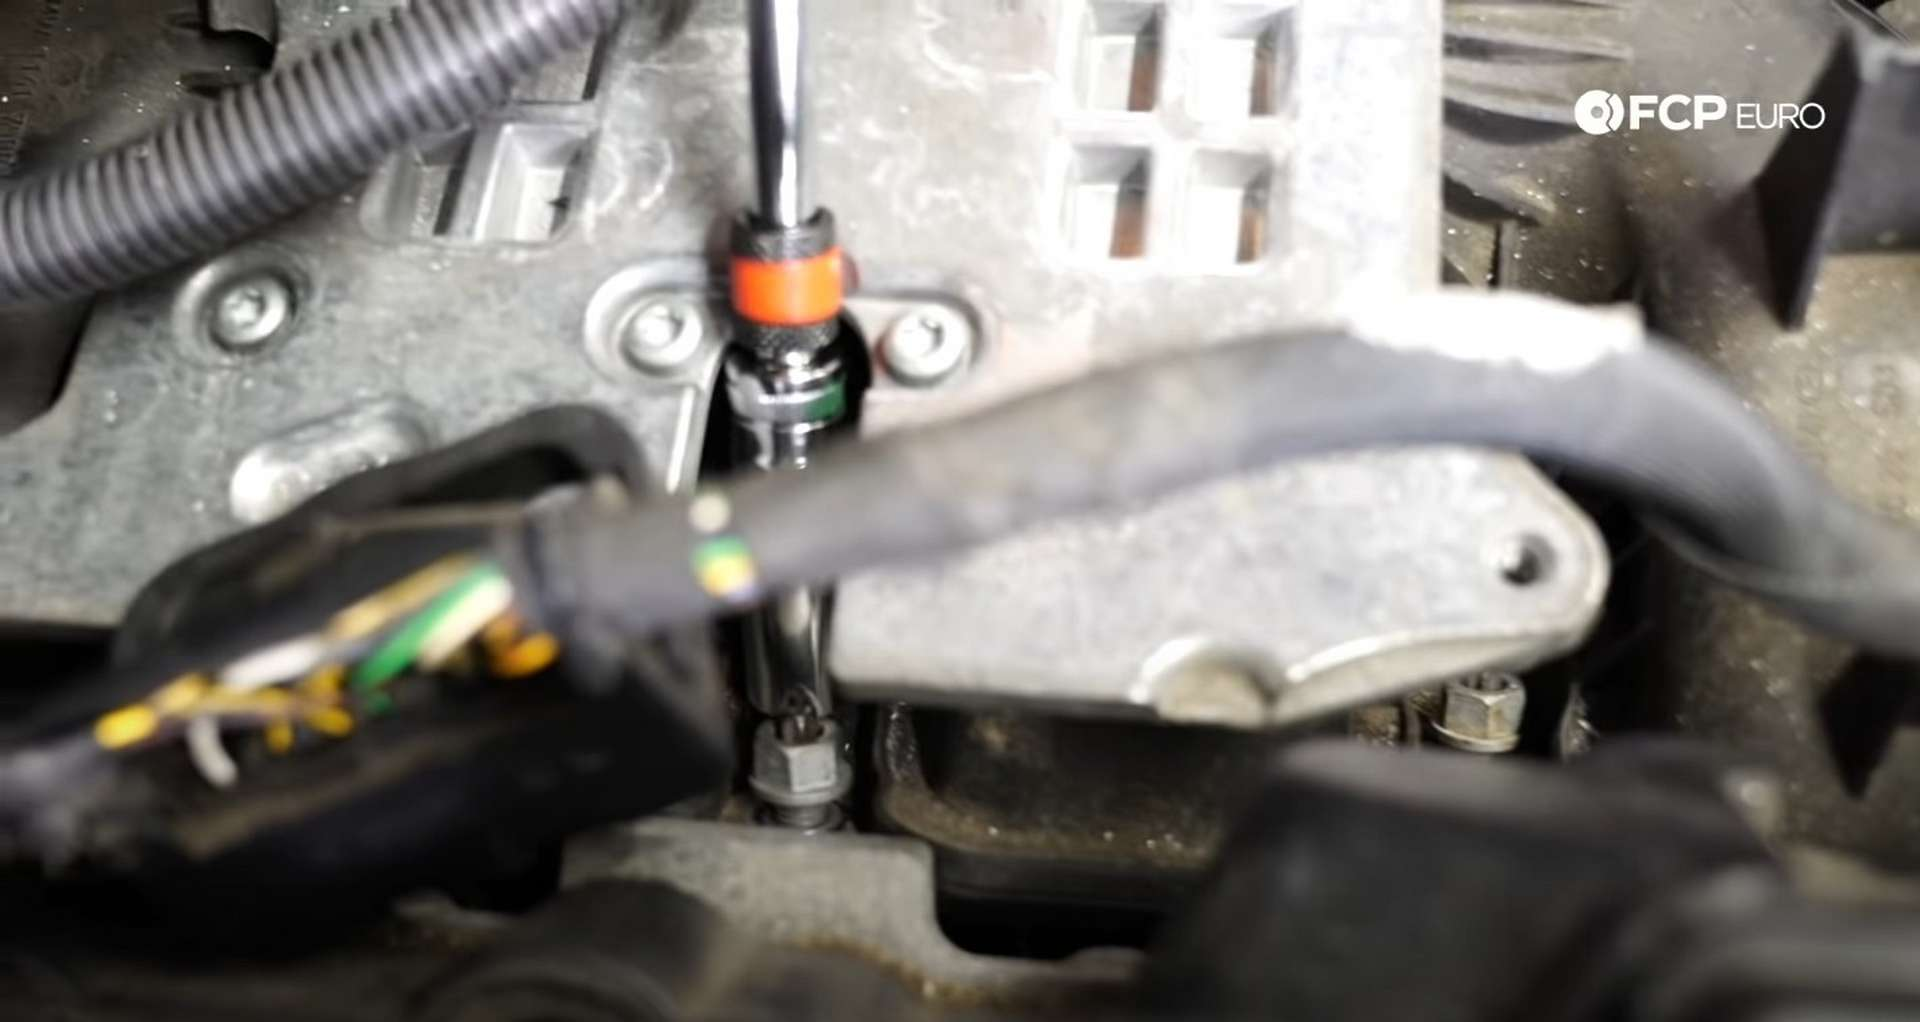 DIY BMW F30 Oil Filter Housing Gasket Replacement bolt tightening the manifold nuts